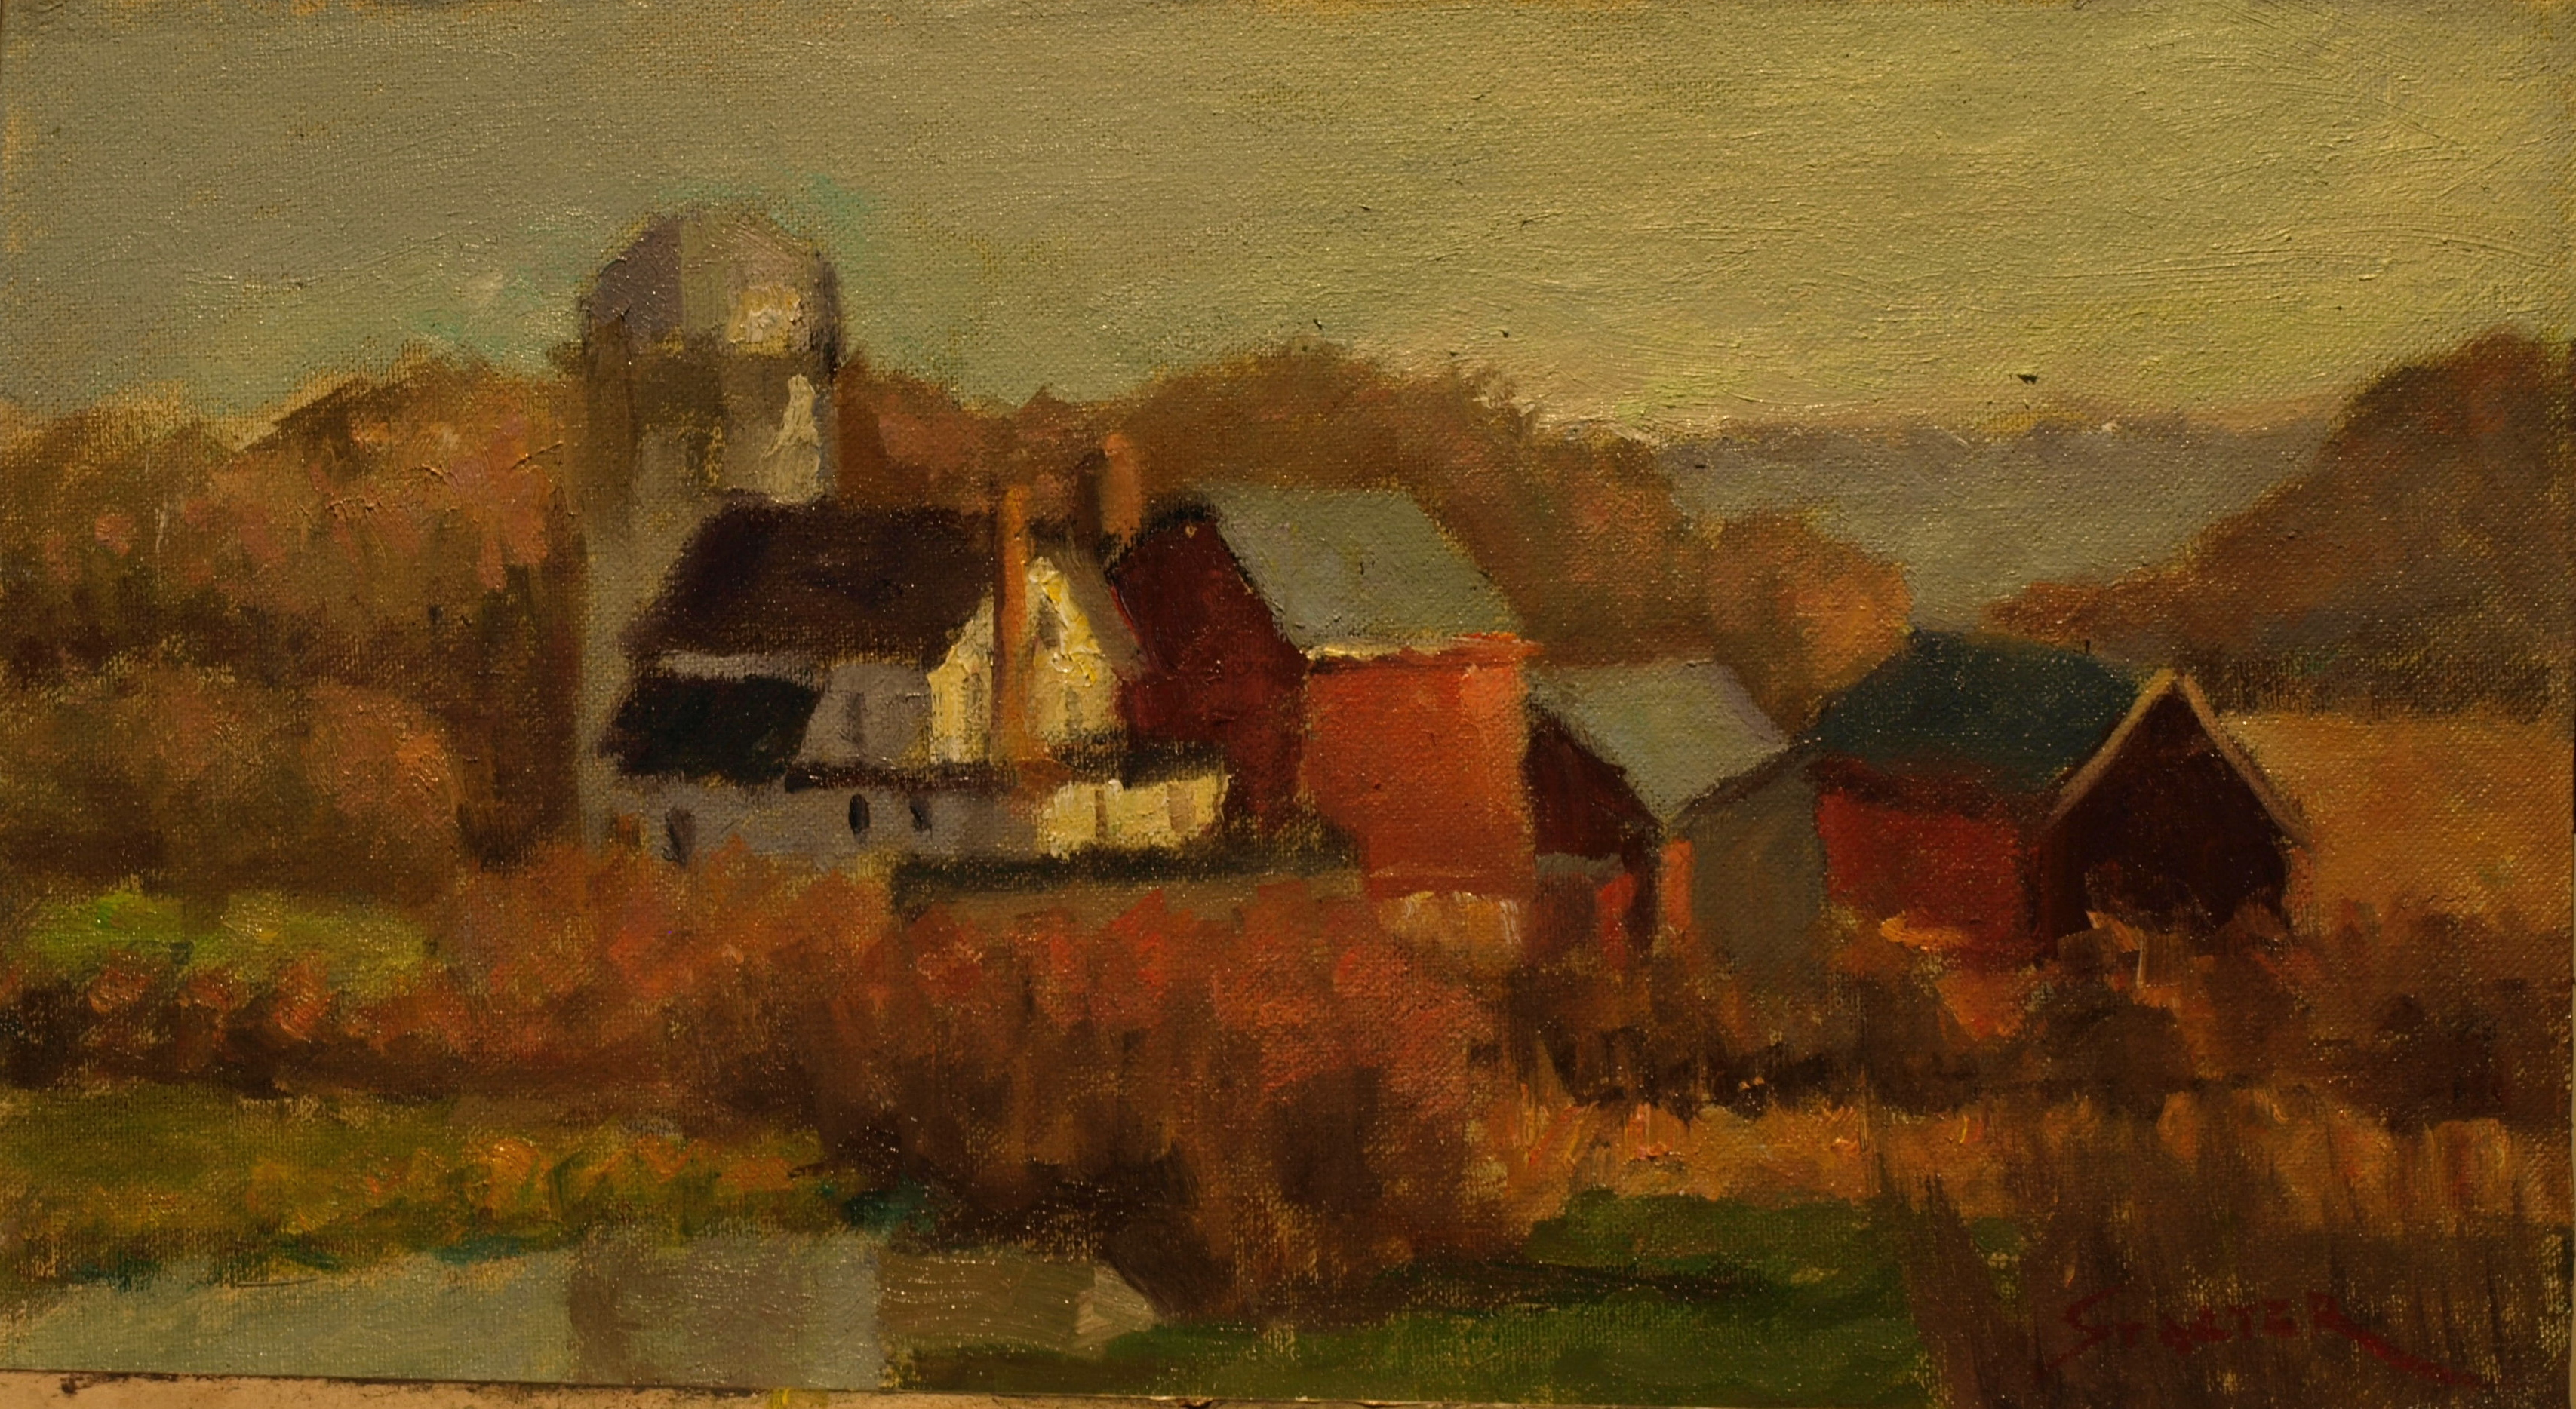 Rabbit Hill Farm, Oil on Canvas on Panel, 8 x 14 Inches, by Richard Stalter, $220